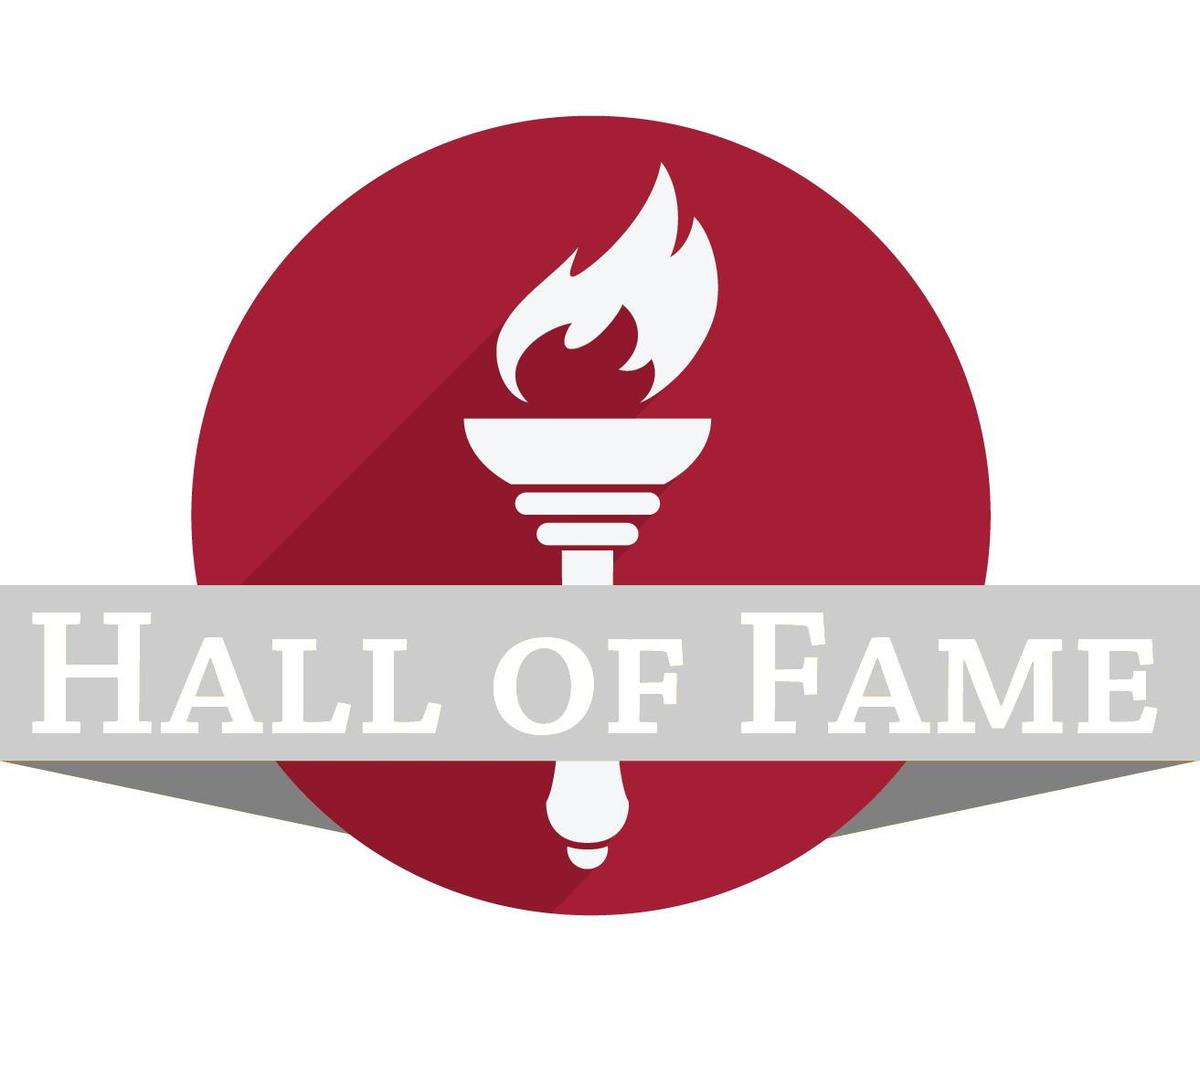 Hall of Fame image